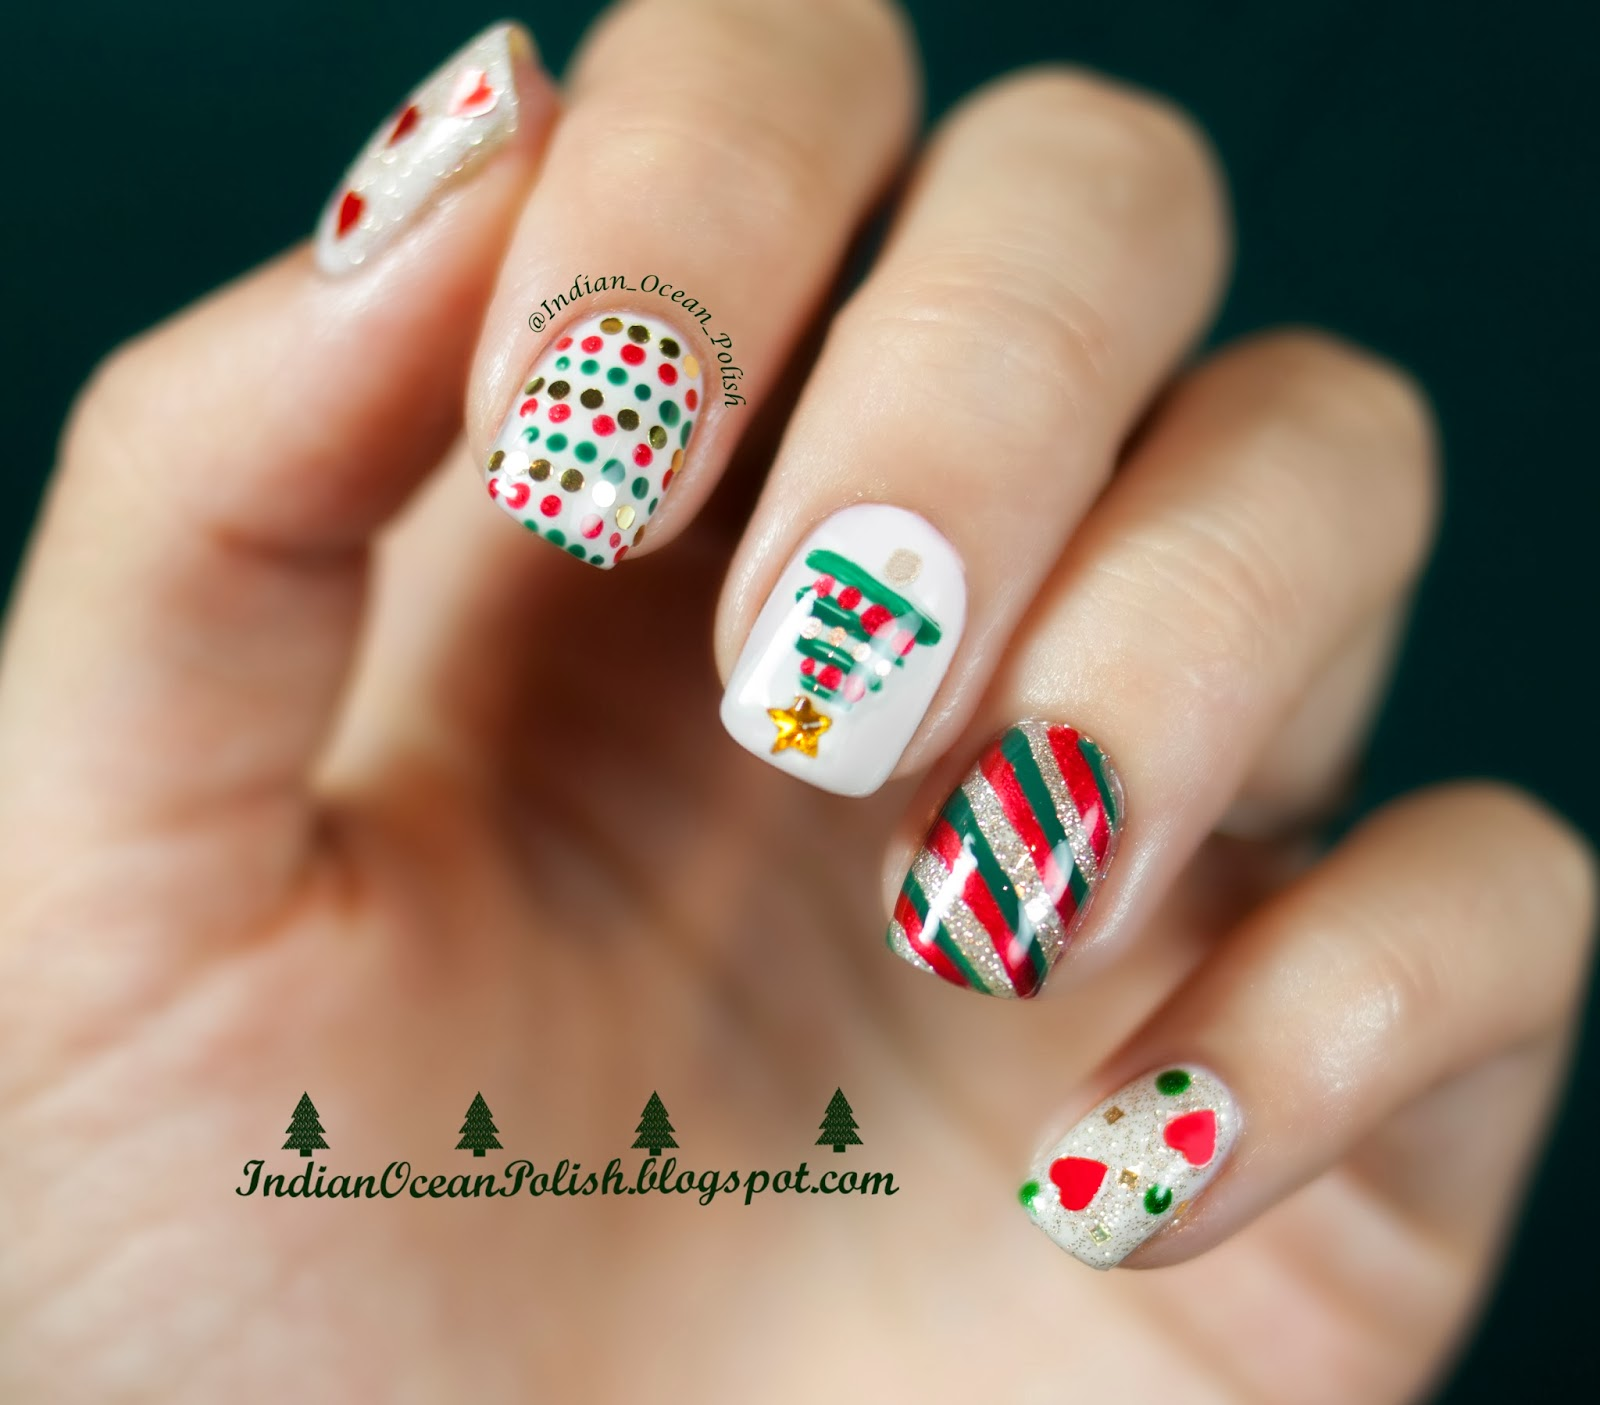 Nail art designs besides red nail art designs on top nail art images - Christmas 2013 Nail Art Ideas Simple And Not So Simple